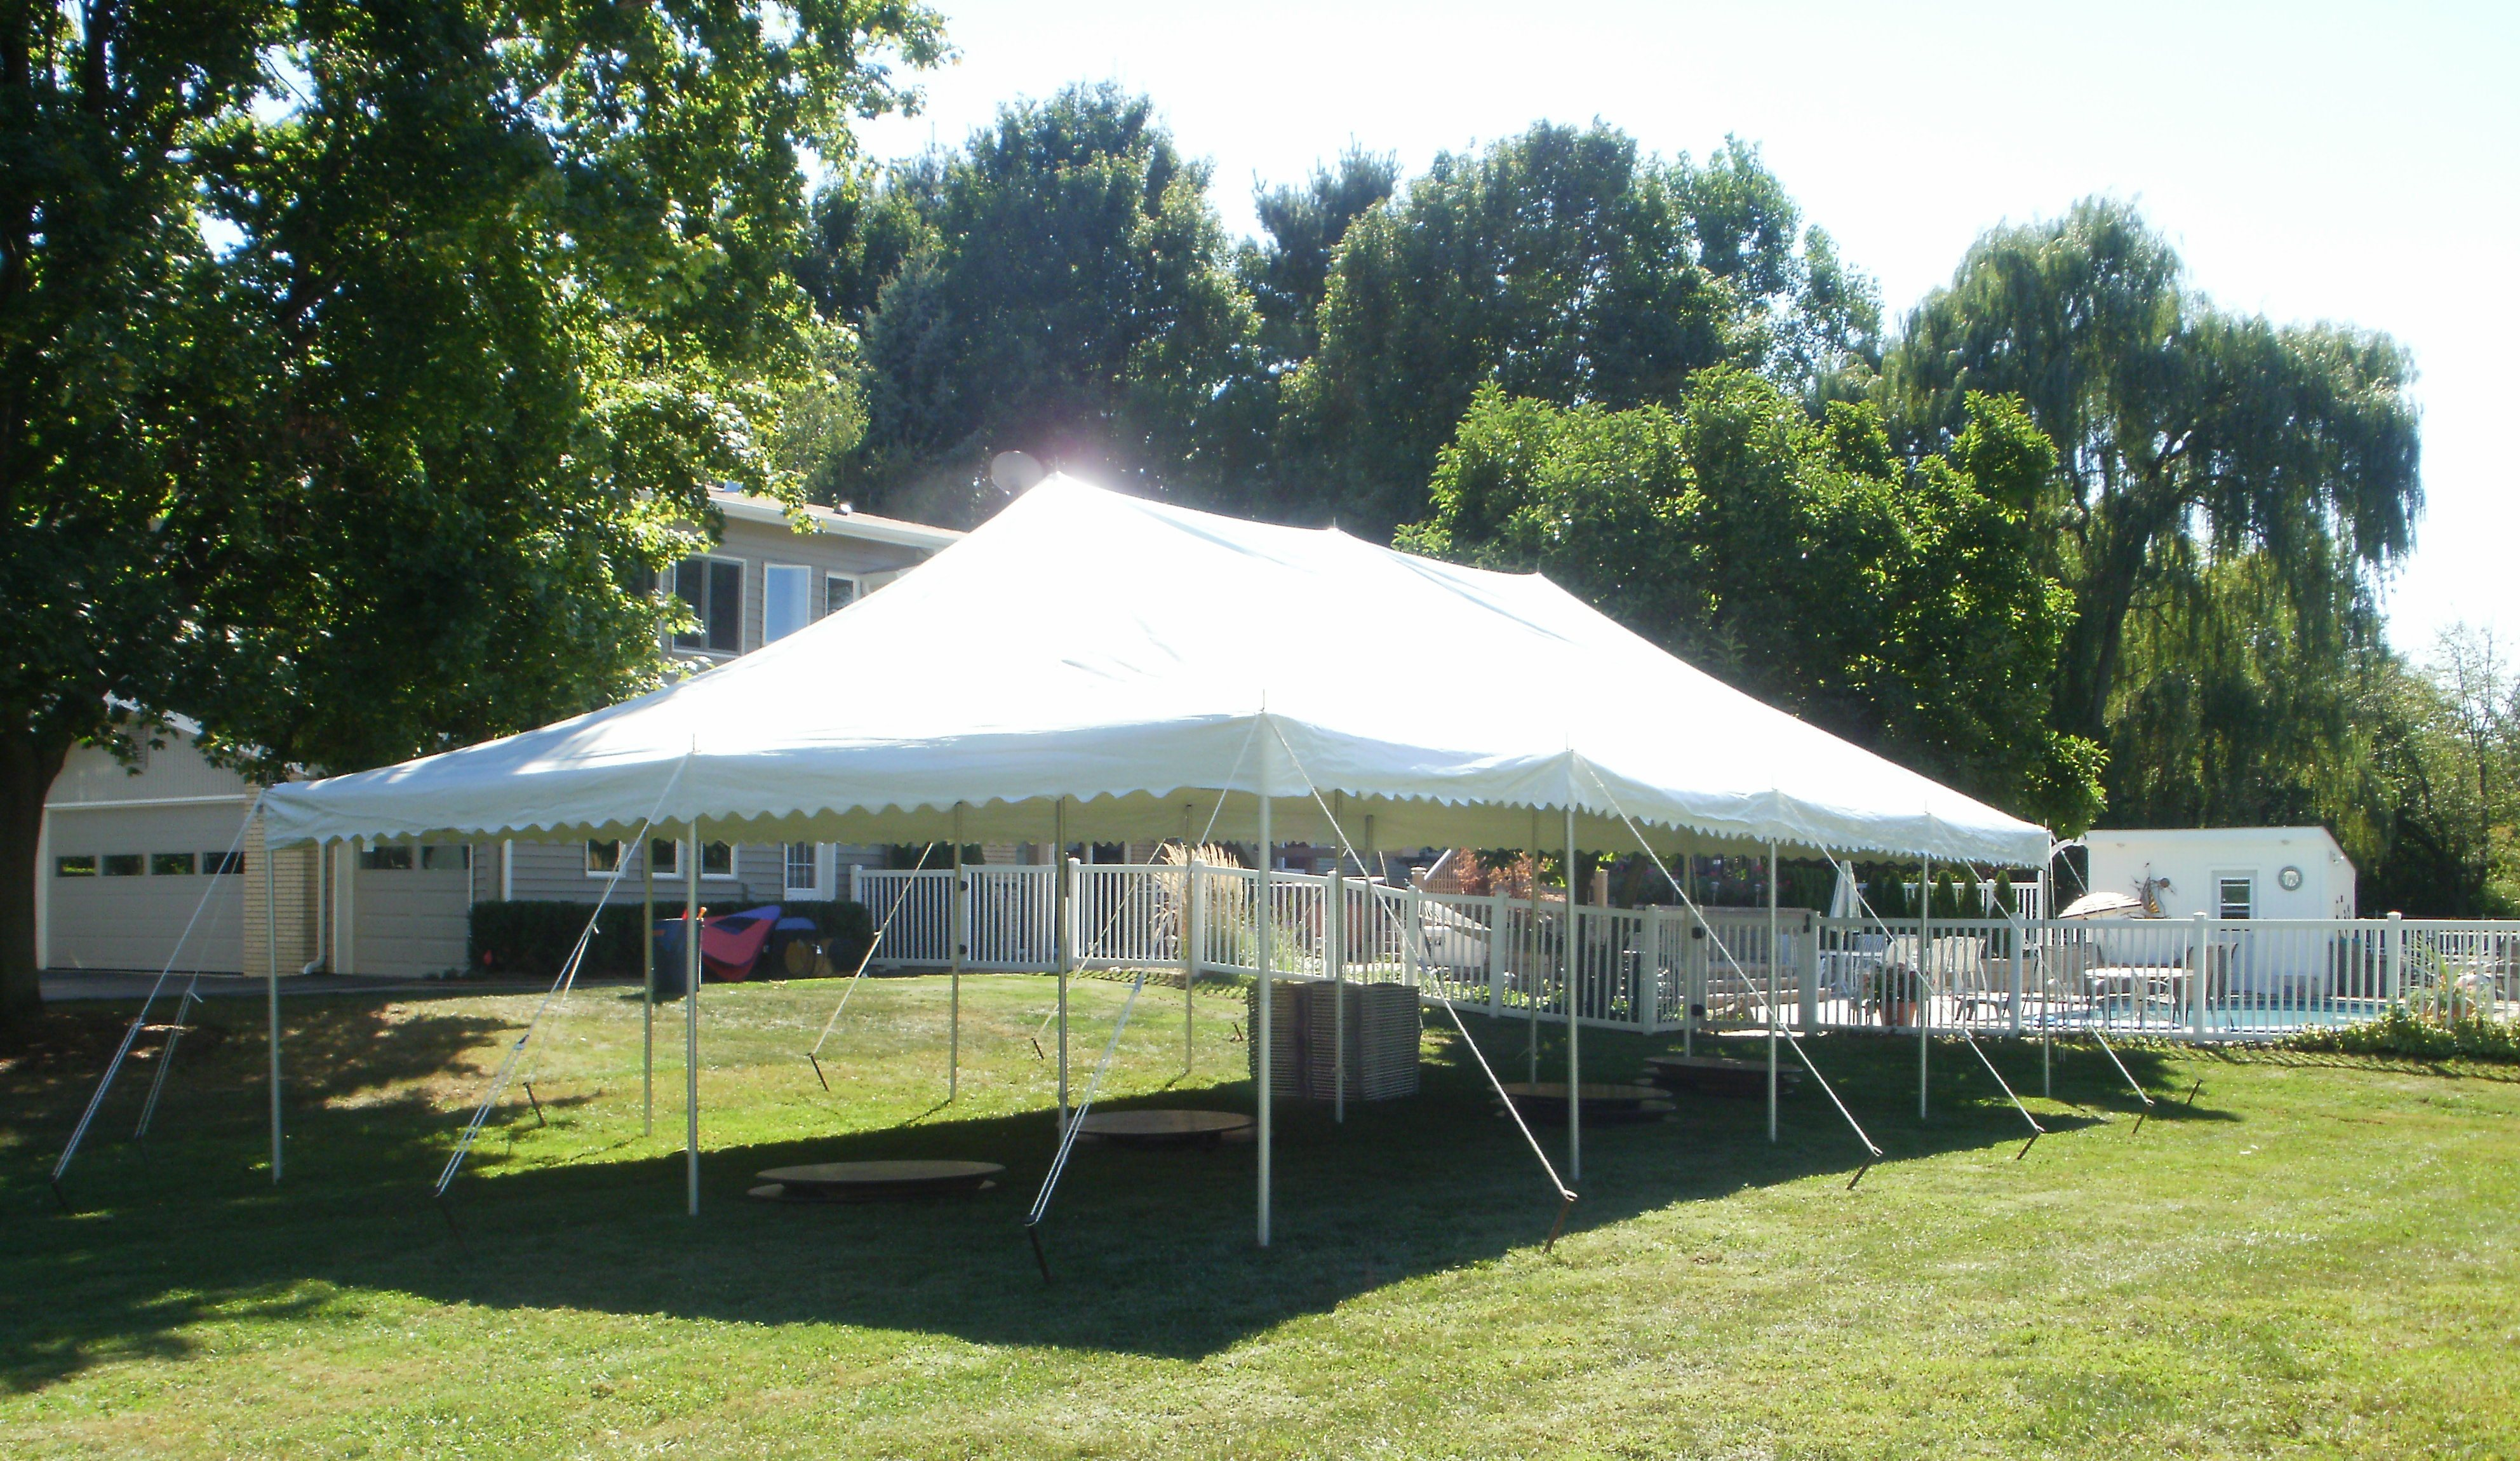 20x40 canopy pole tent graduation party novi michigan & 20 x 40 Canopy Pole Tent